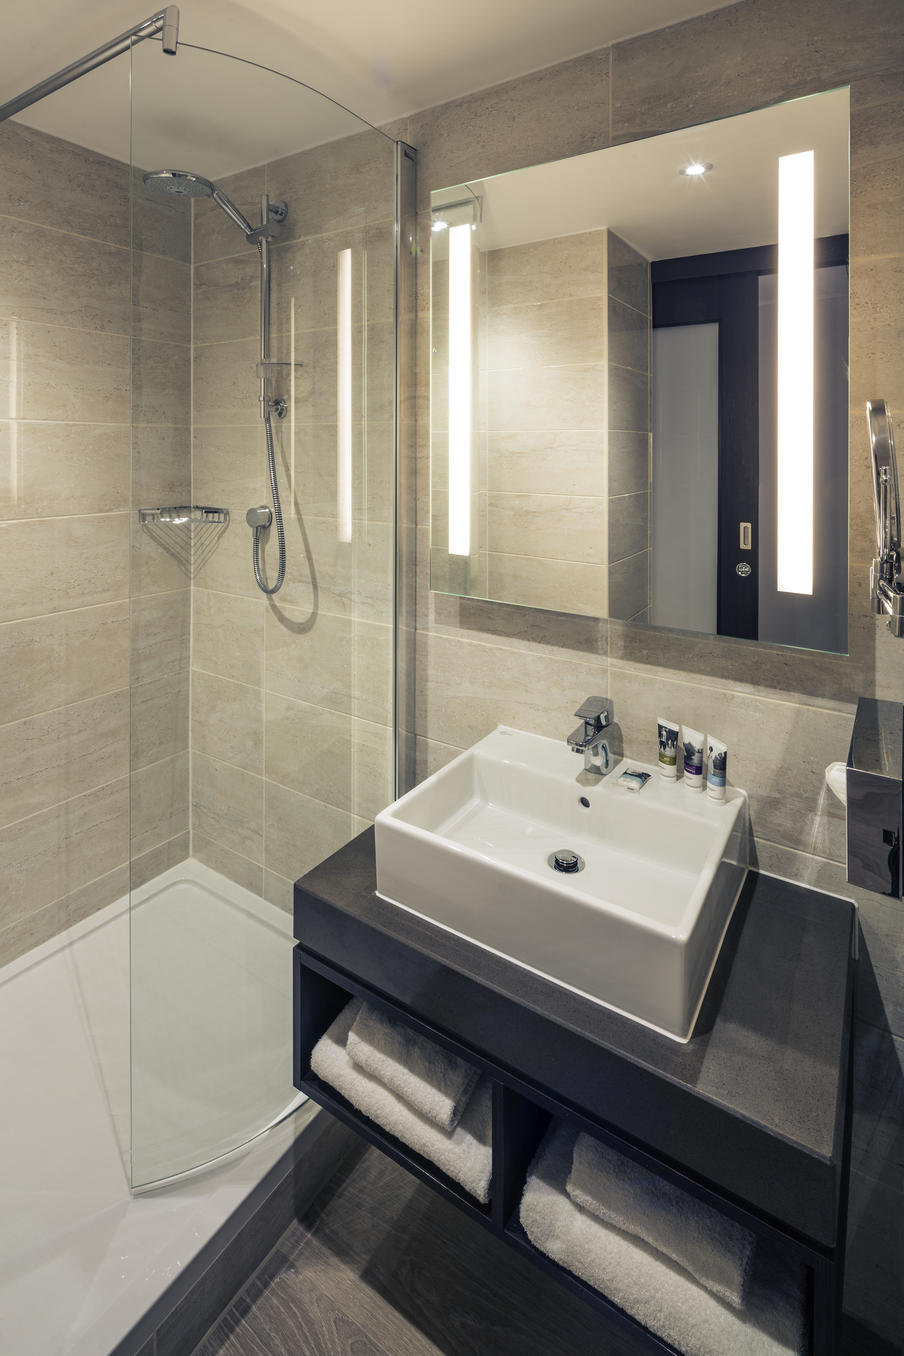 Modern shower room themed in gray with rectangle sink with travel size shampoo and conditioner, white towels.